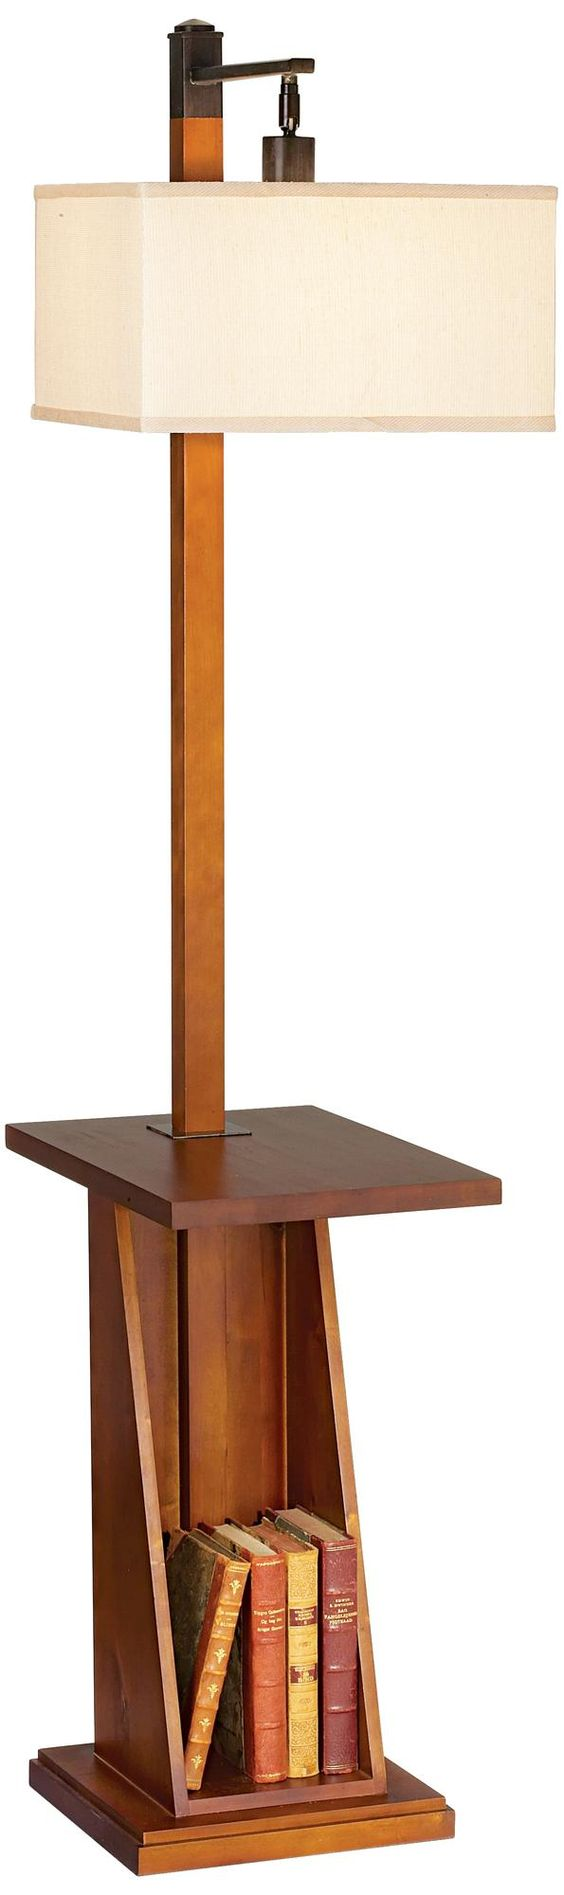 Astor place walnut tray and shelf floor lamp lampsplus for Floor lamp with shelves